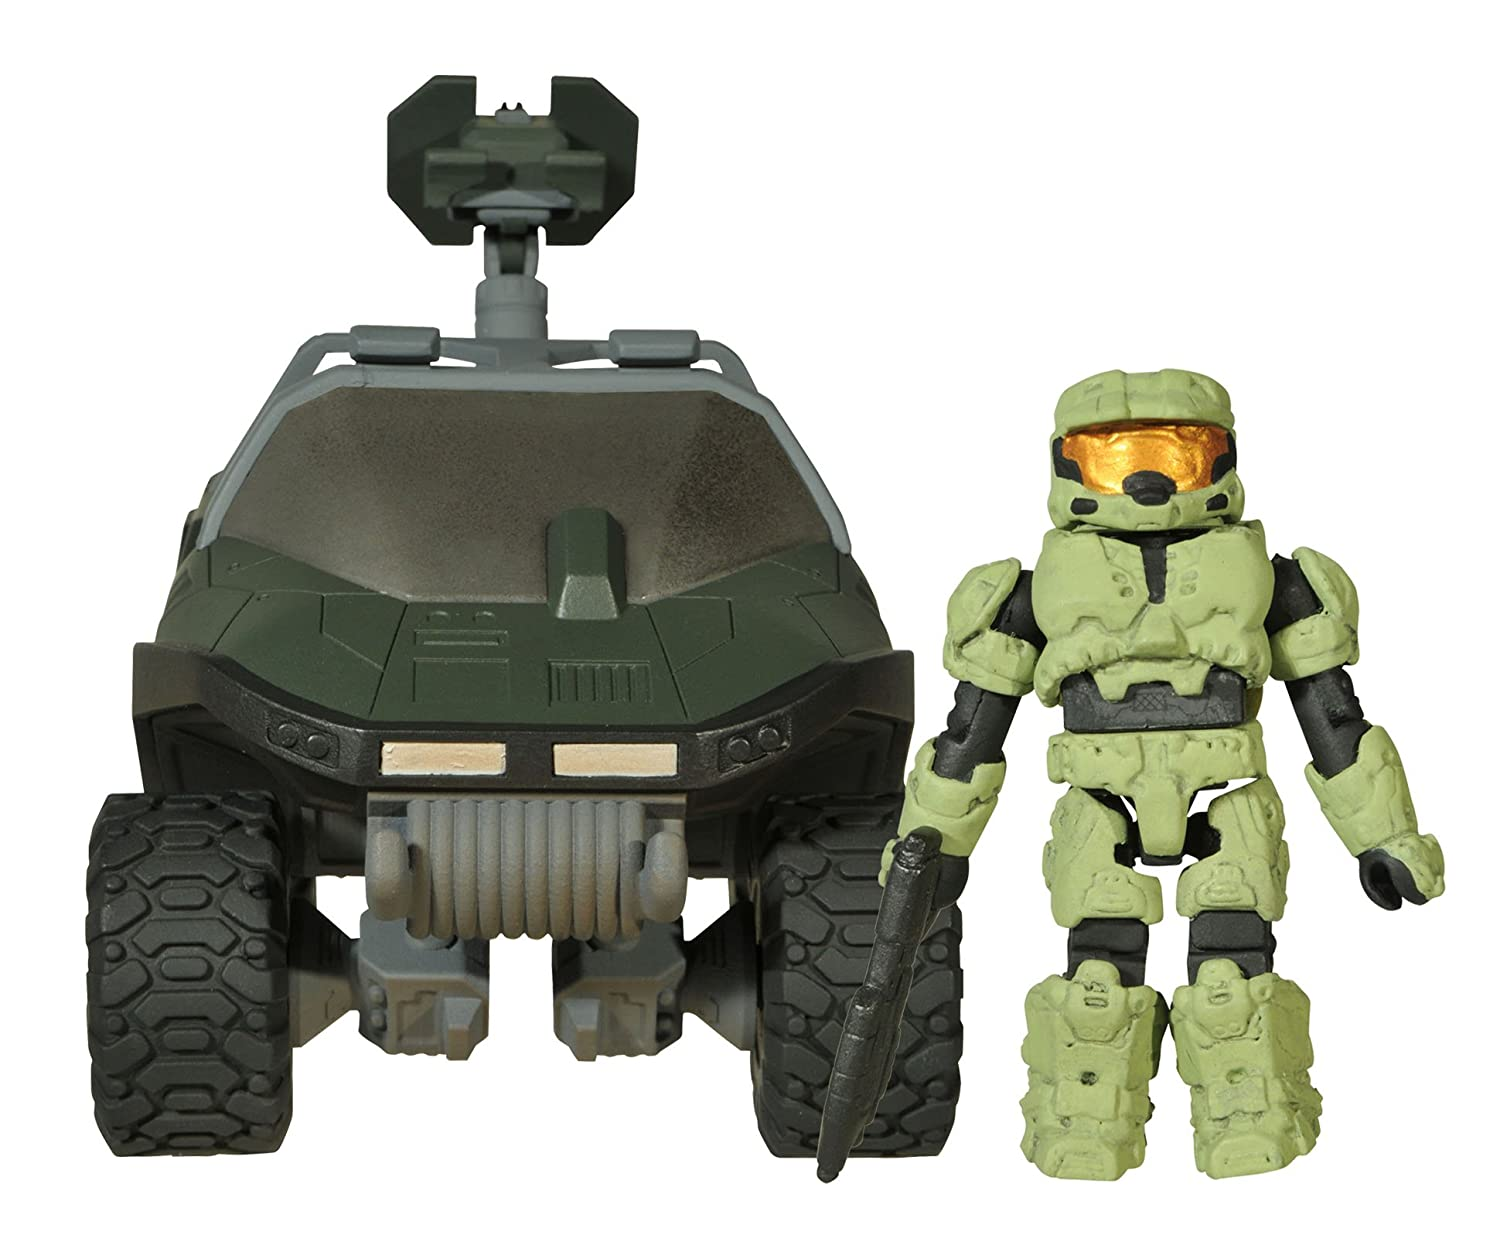 Halo Series 2 Warthog with Missile Cannon Vehicle